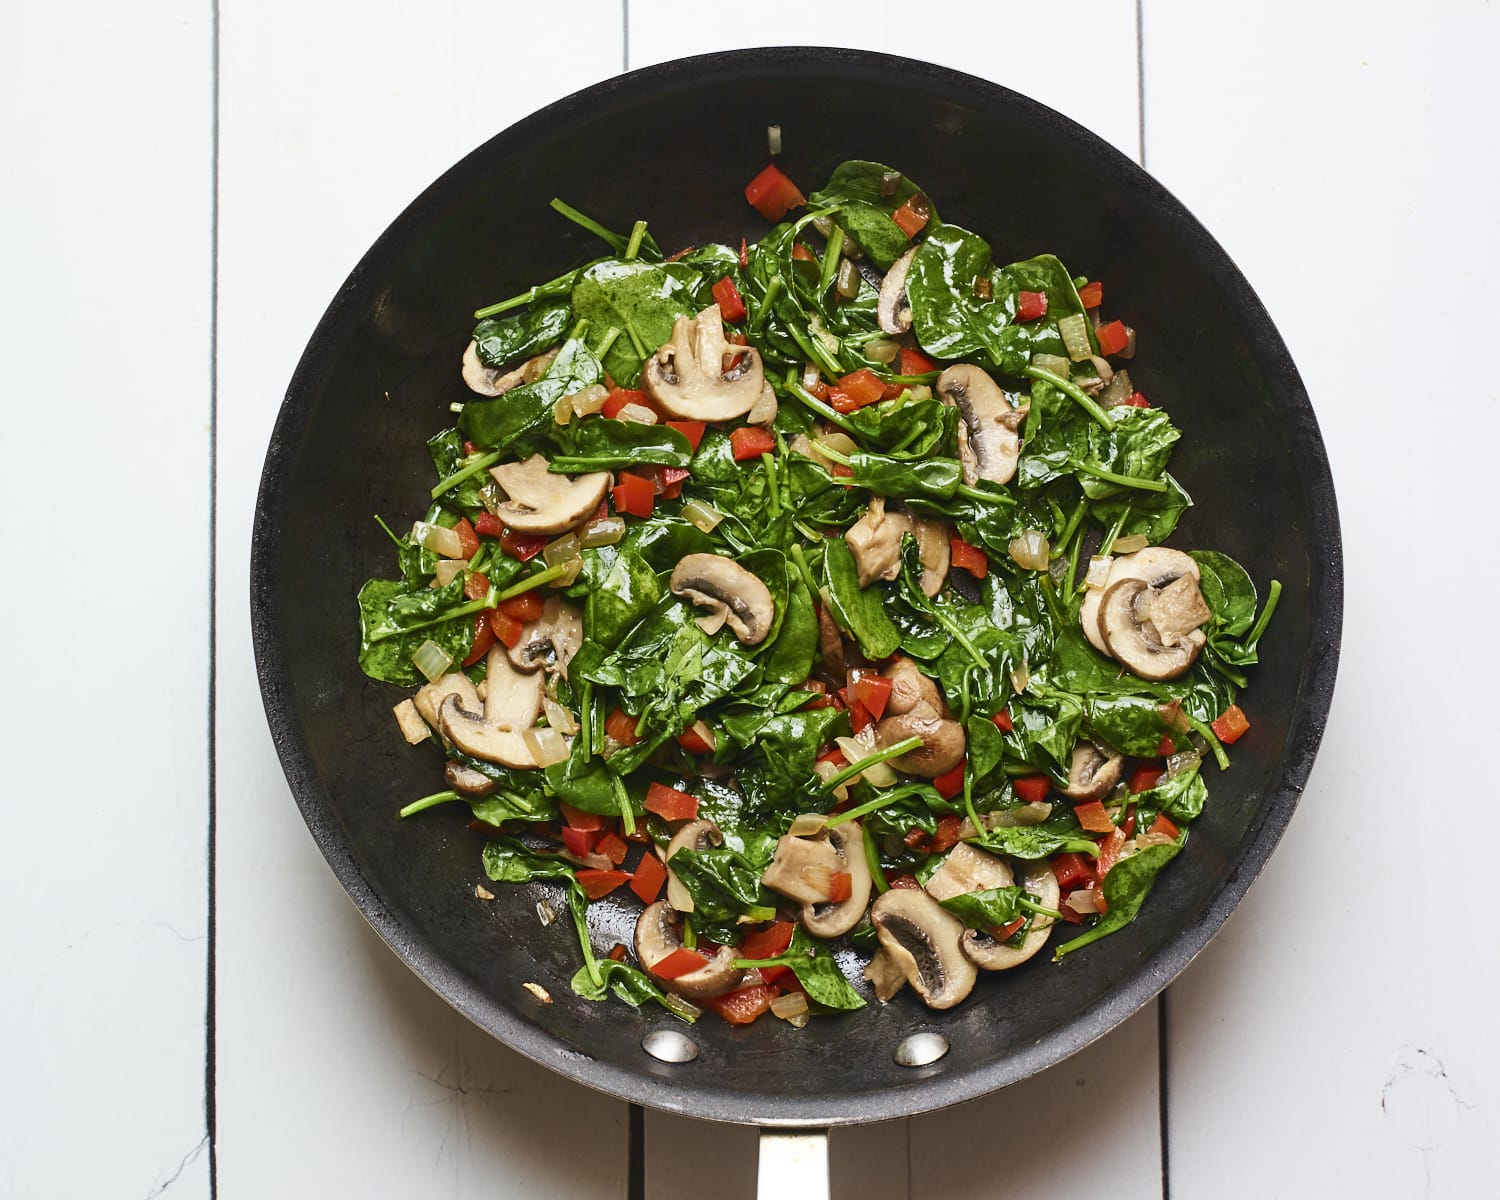 Skillet with bell pepper, mushrooms and spinach.